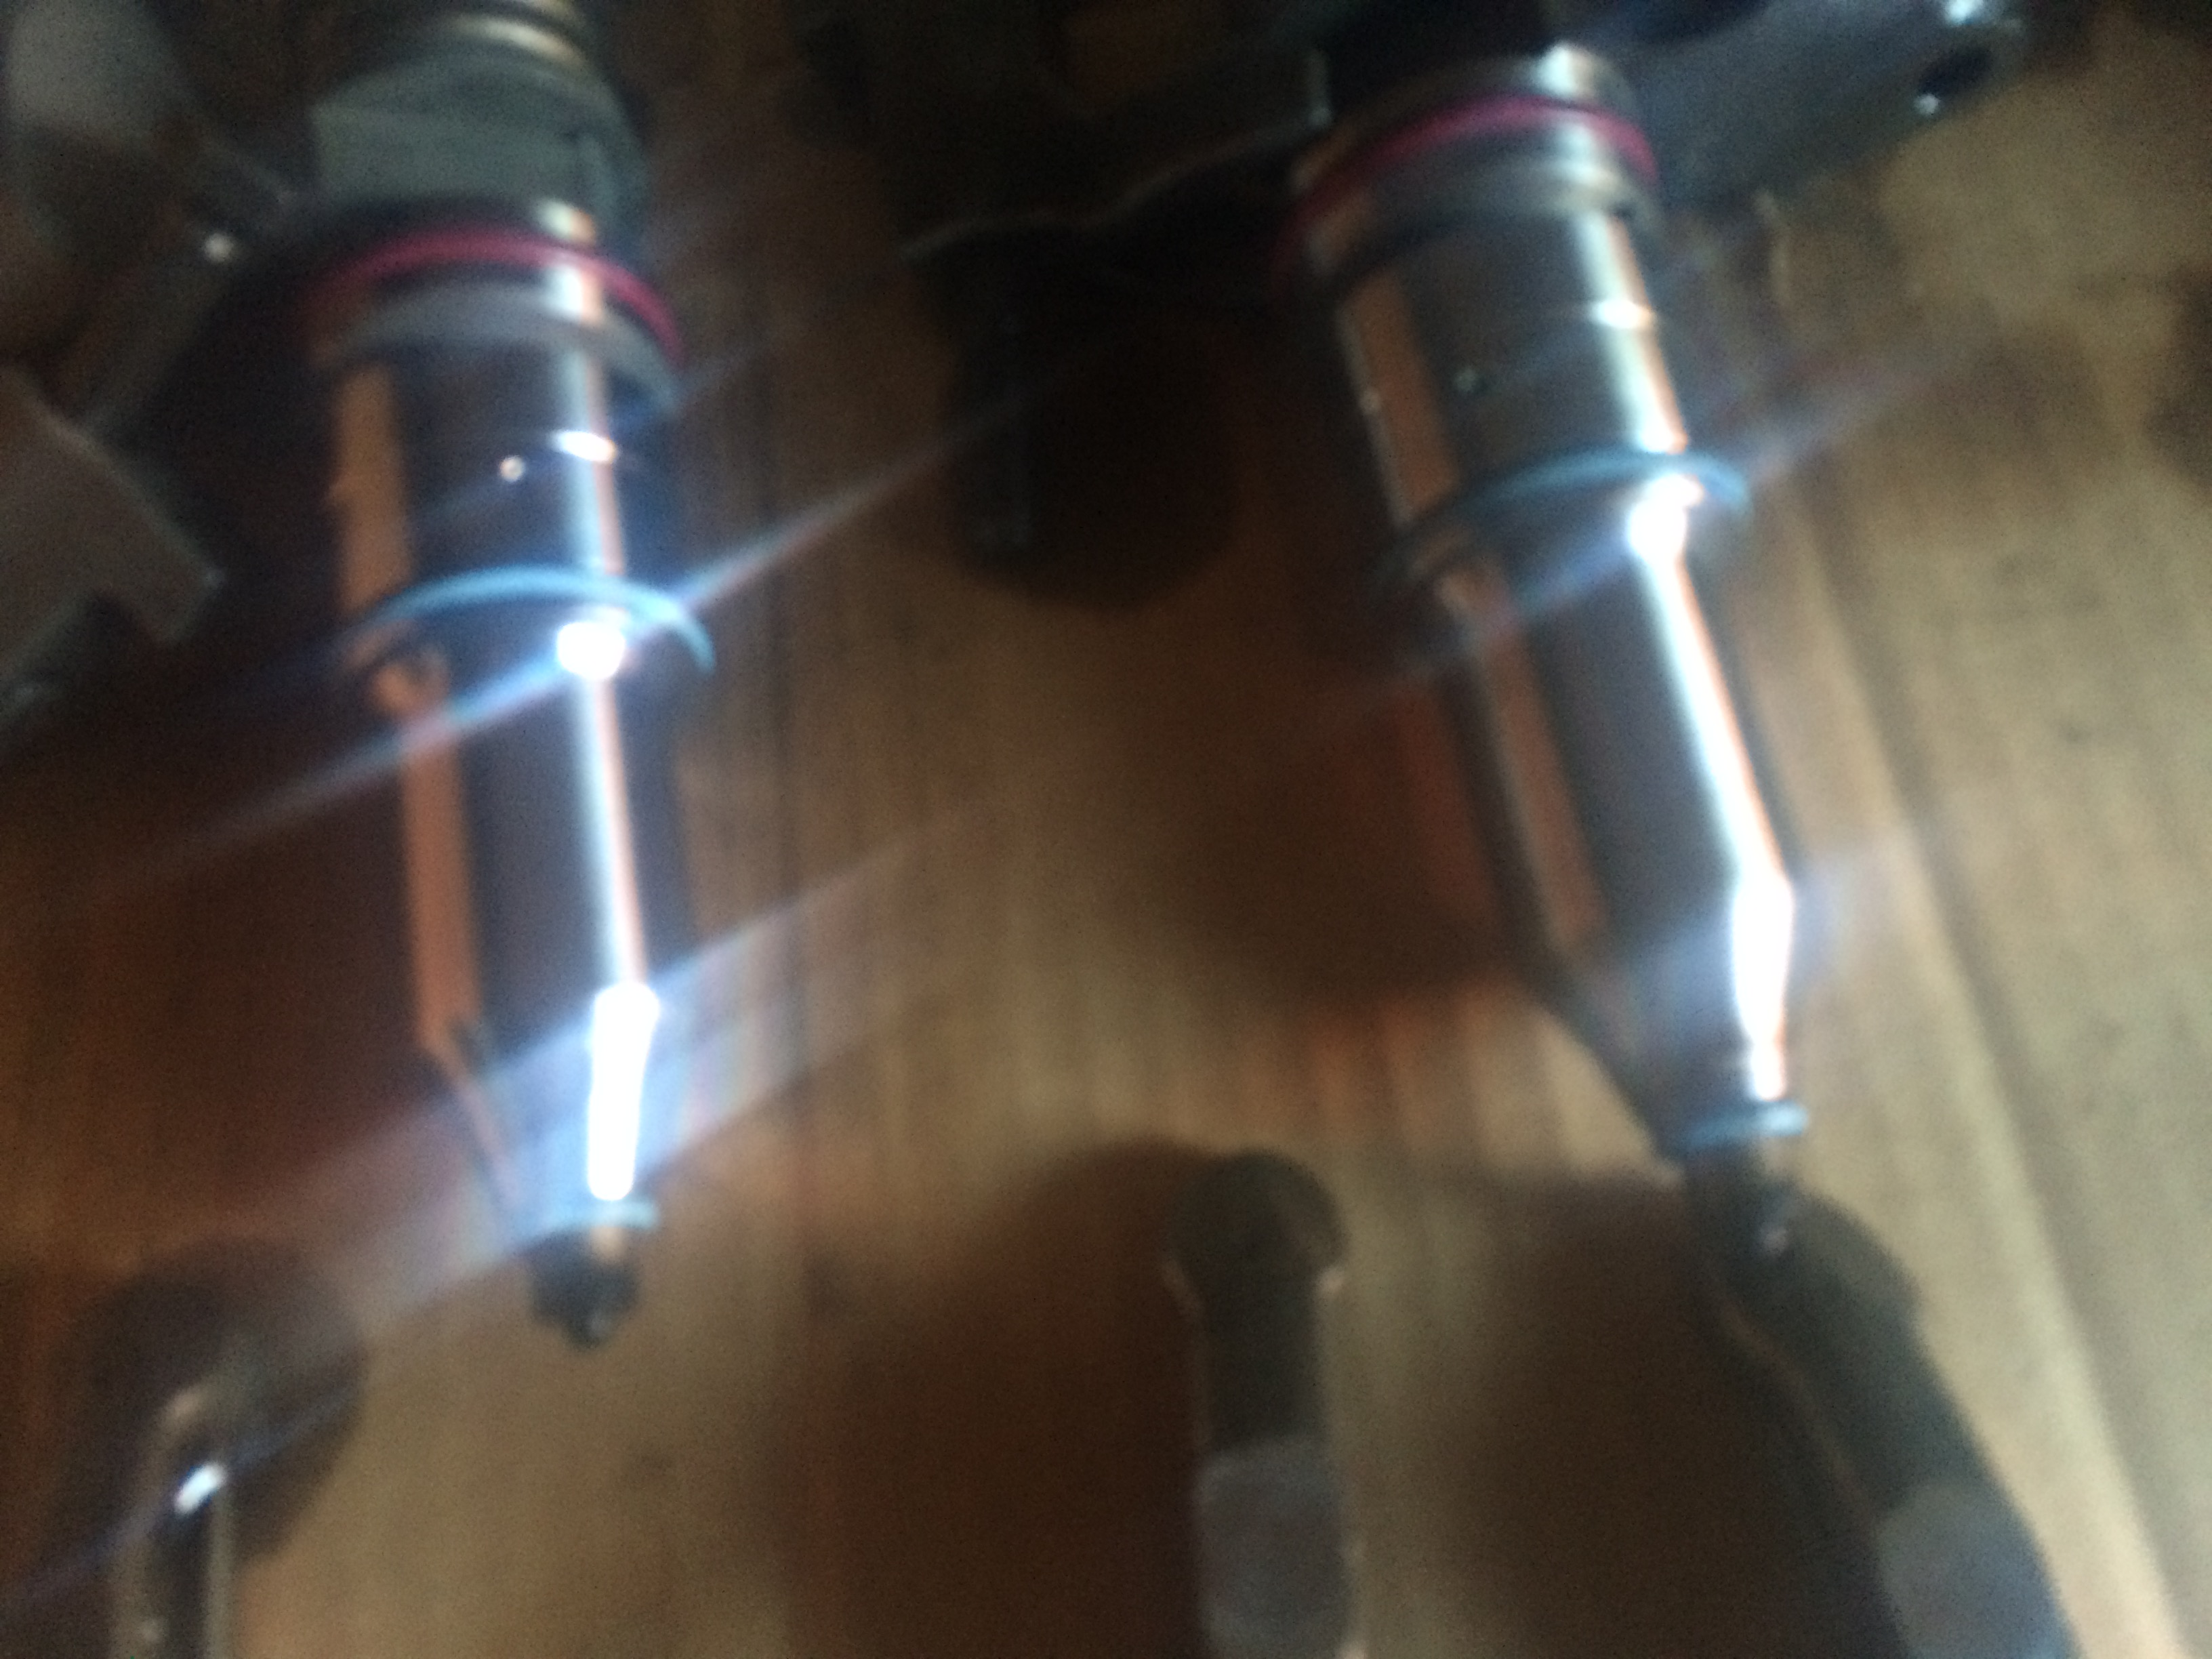 Have 04 cat c13 s/n kcb Low power, miss firing issue No